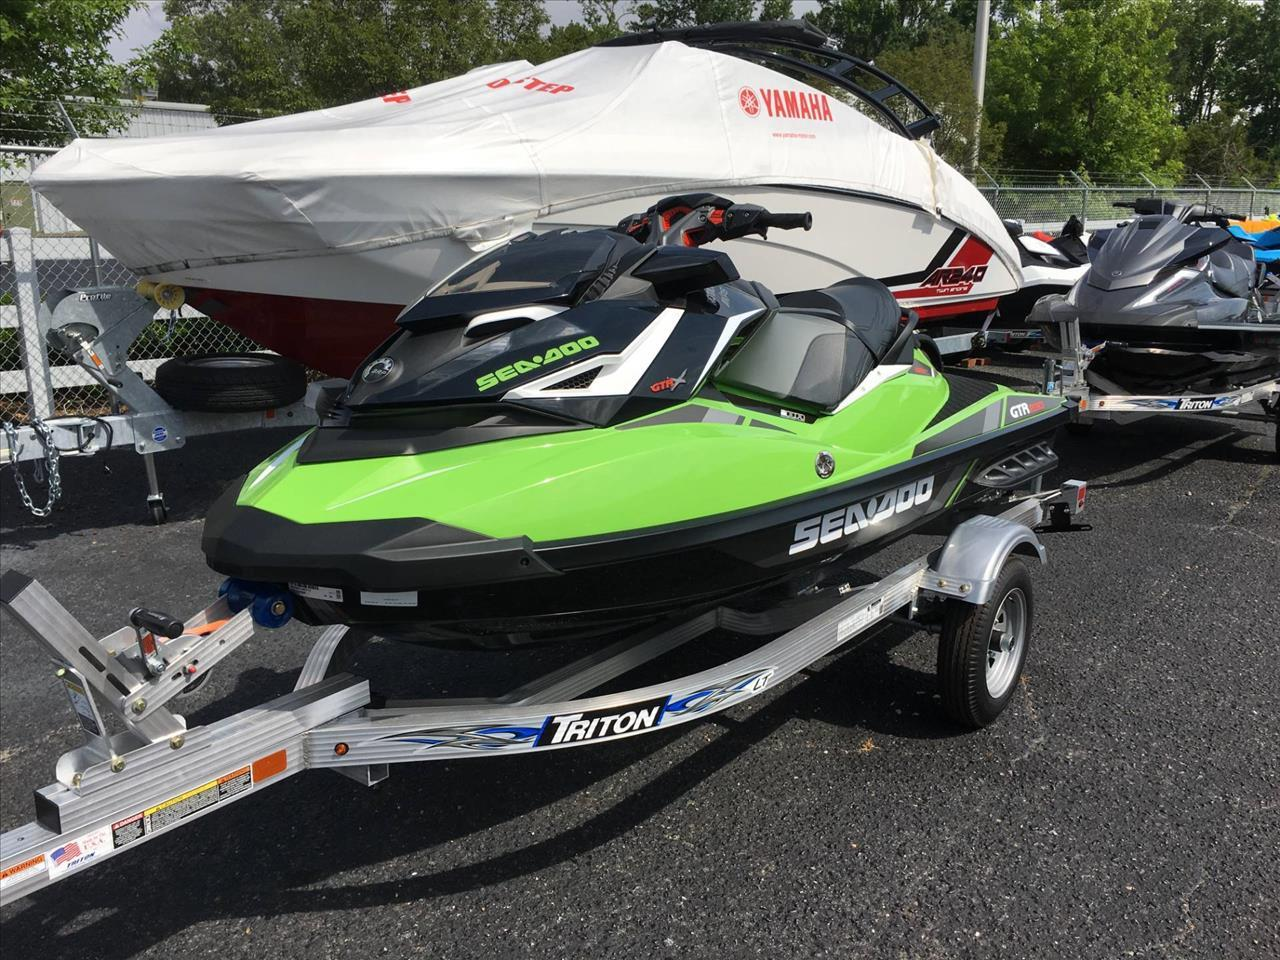 2017 Sea-Doo GTR-X 230 for sale at Vehicle Network, LLC - Performance East, INC. in Goldsboro NC